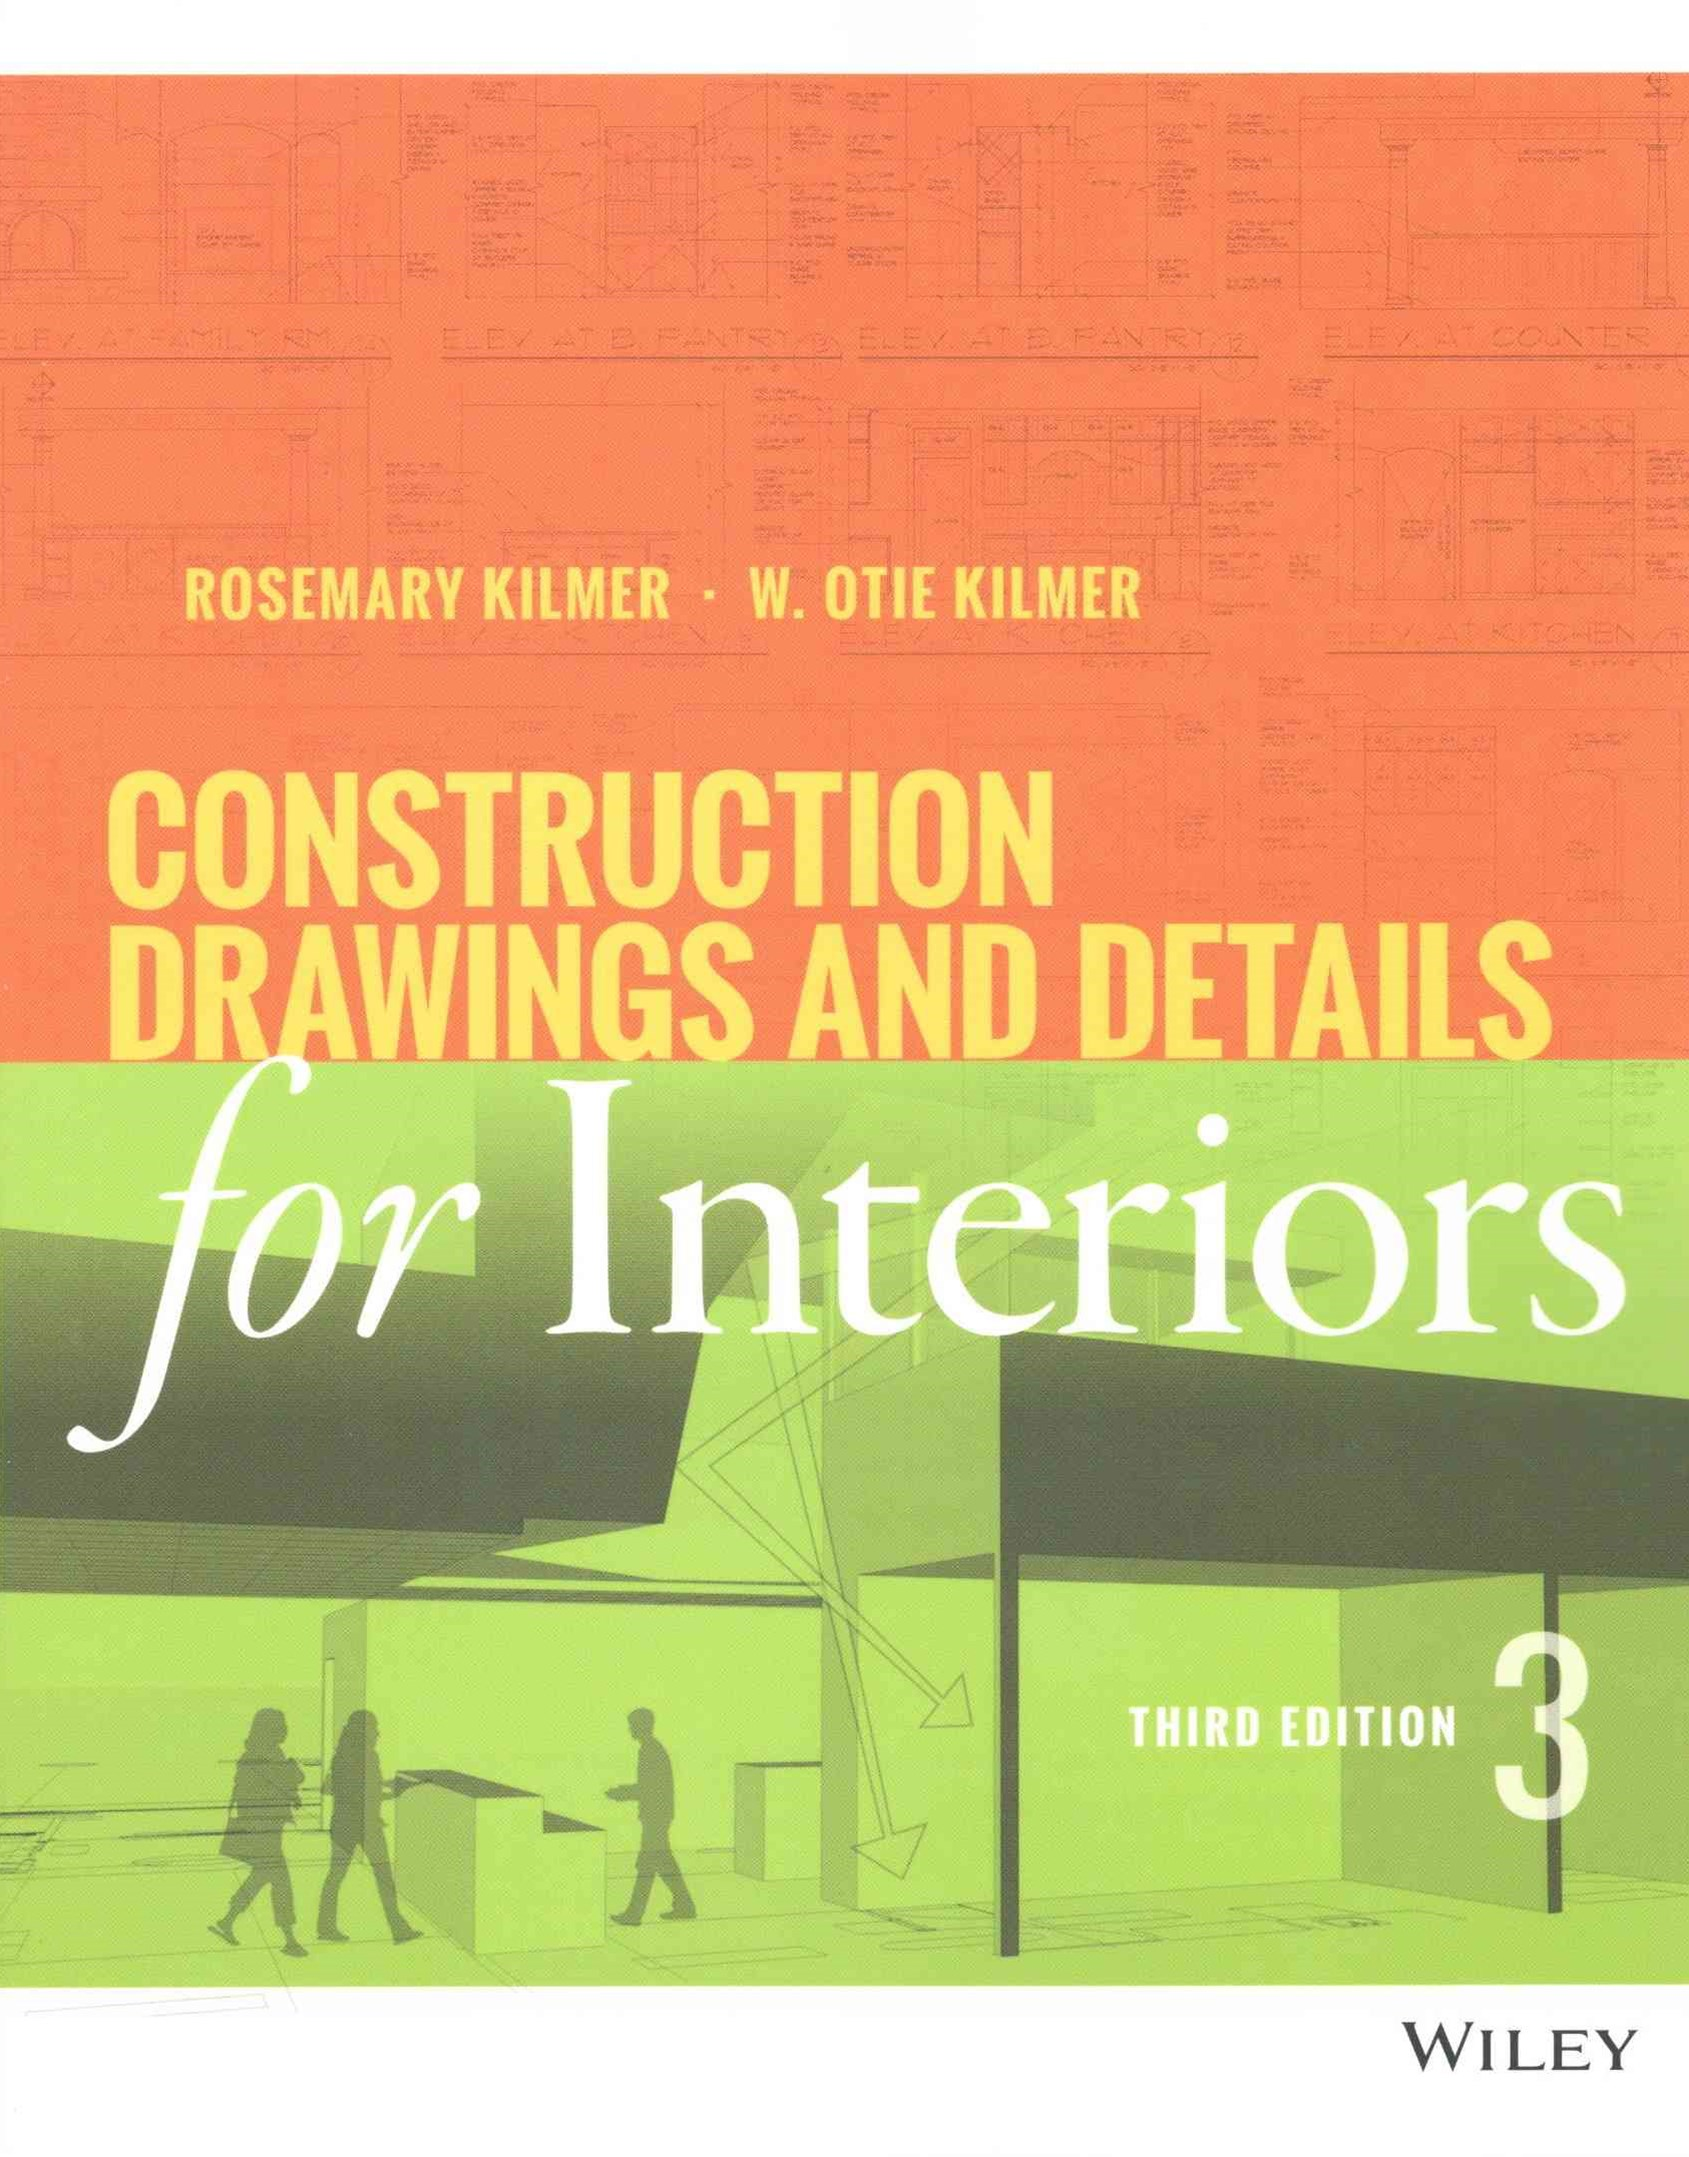 Construction Drawings and Details for Interiors, Third Edition